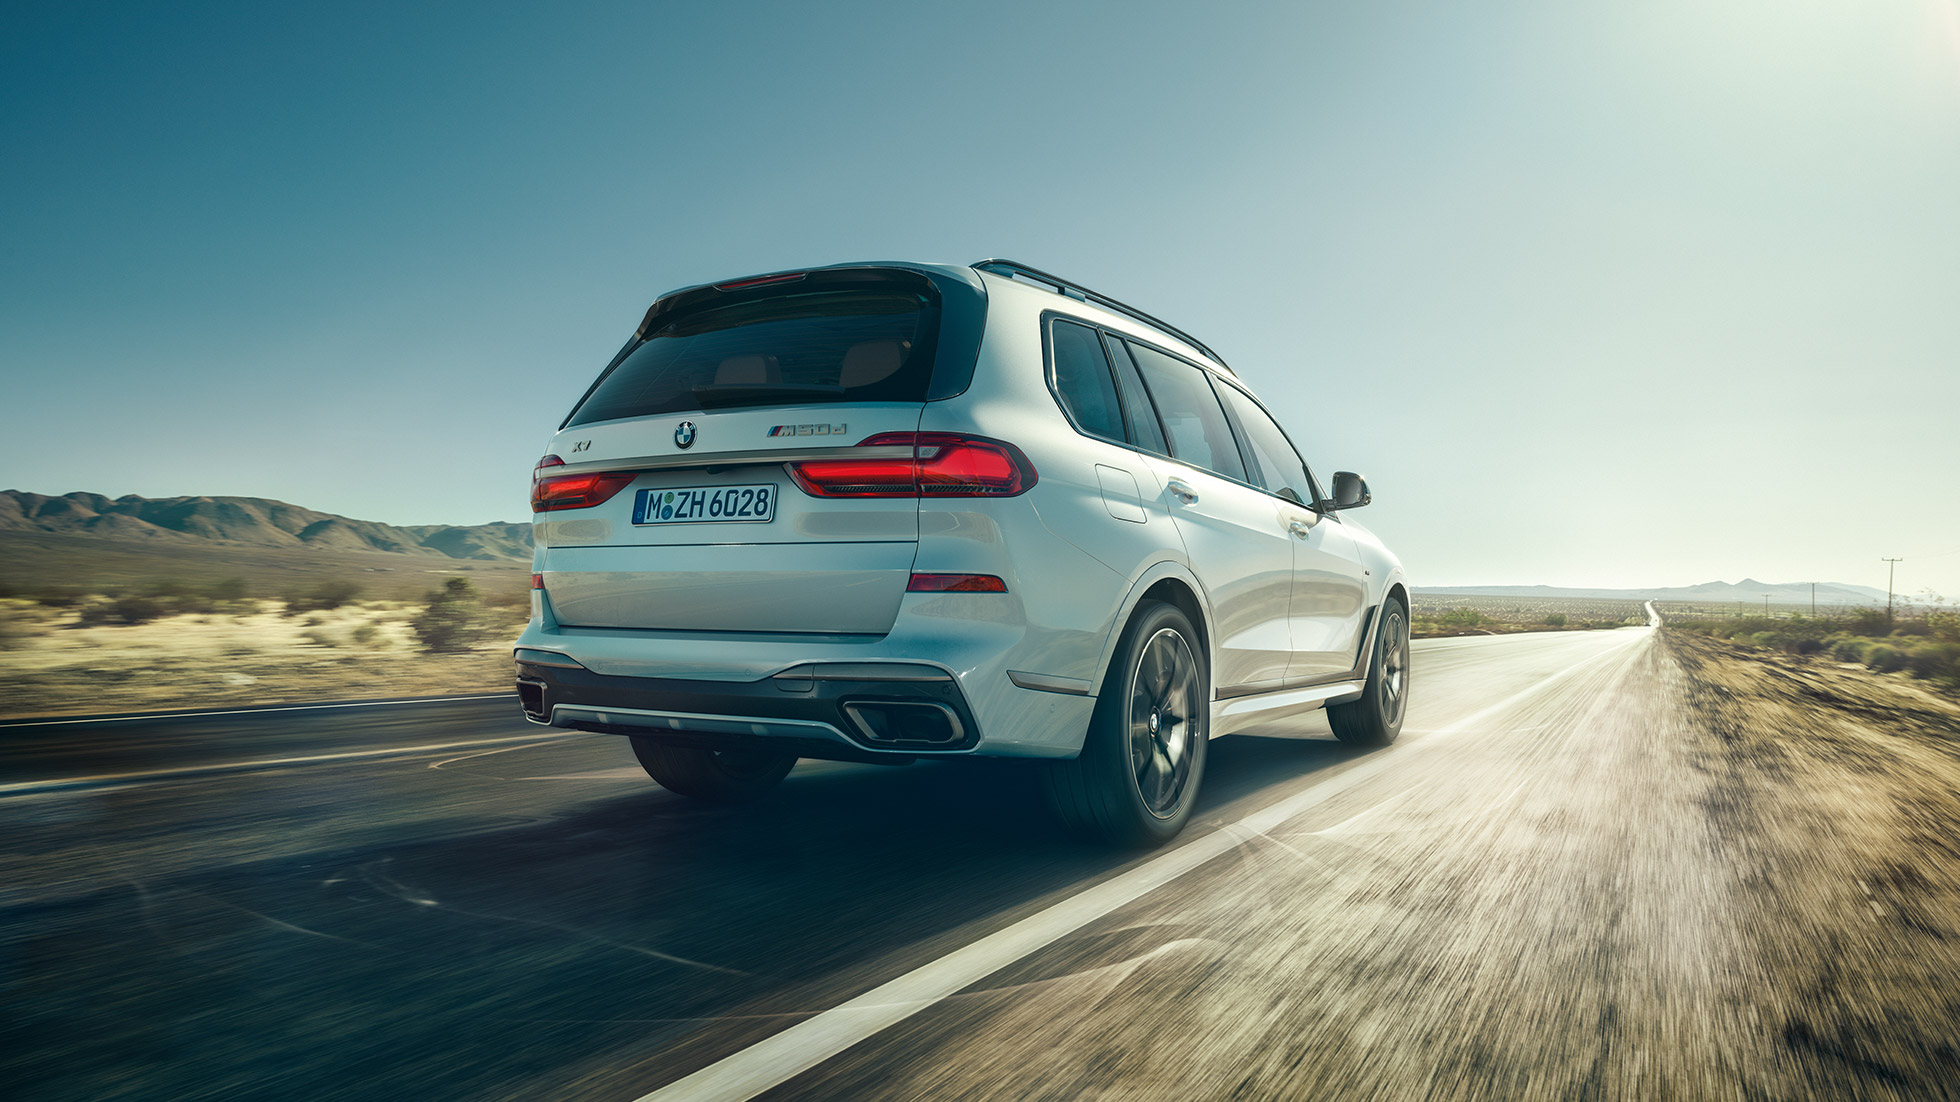 Bmw X7 M50d First Look At The M Sport Package